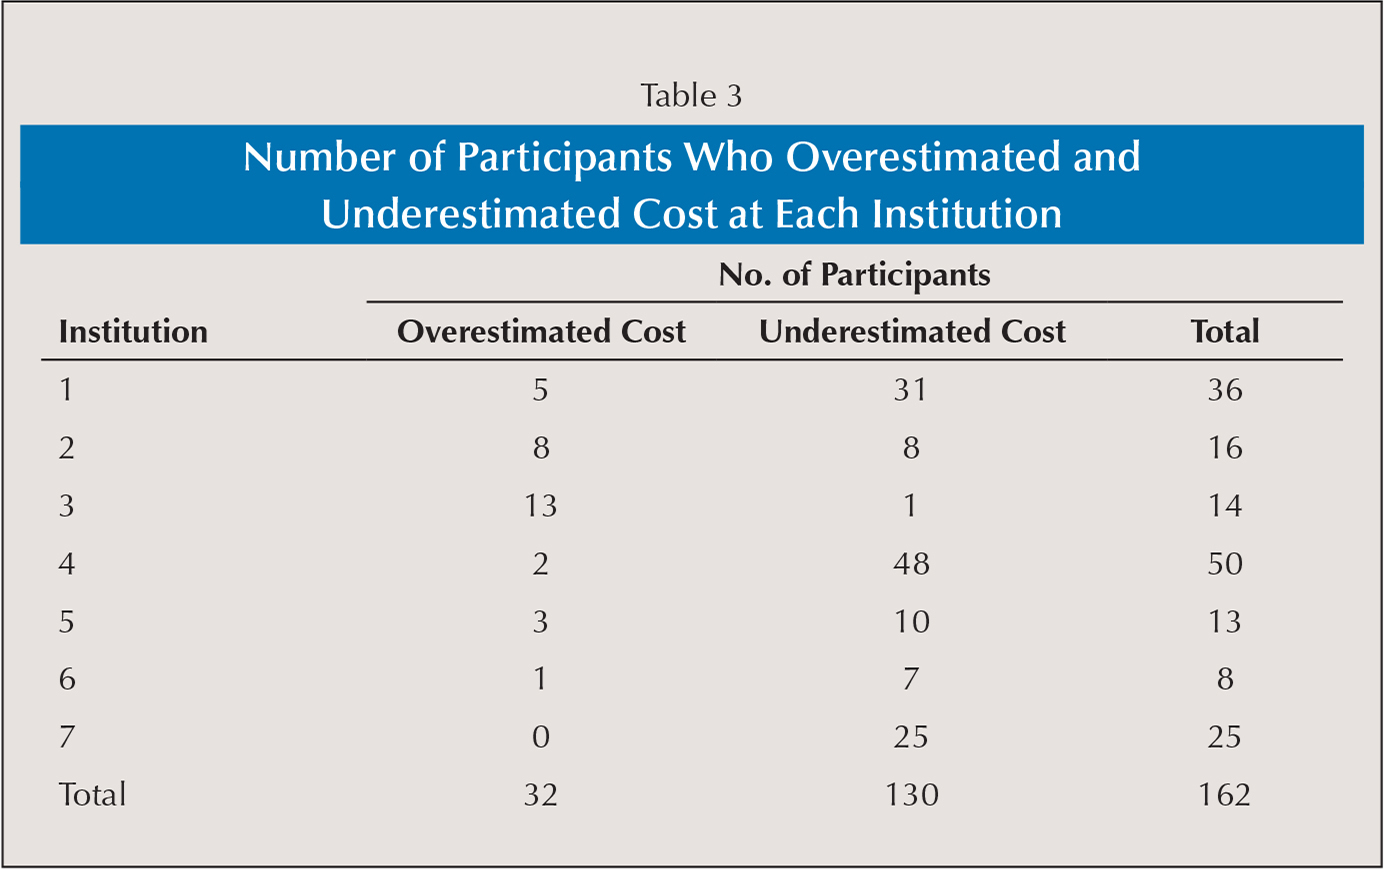 Number of Participants Who Overestimated and Underestimated Cost at Each Institution